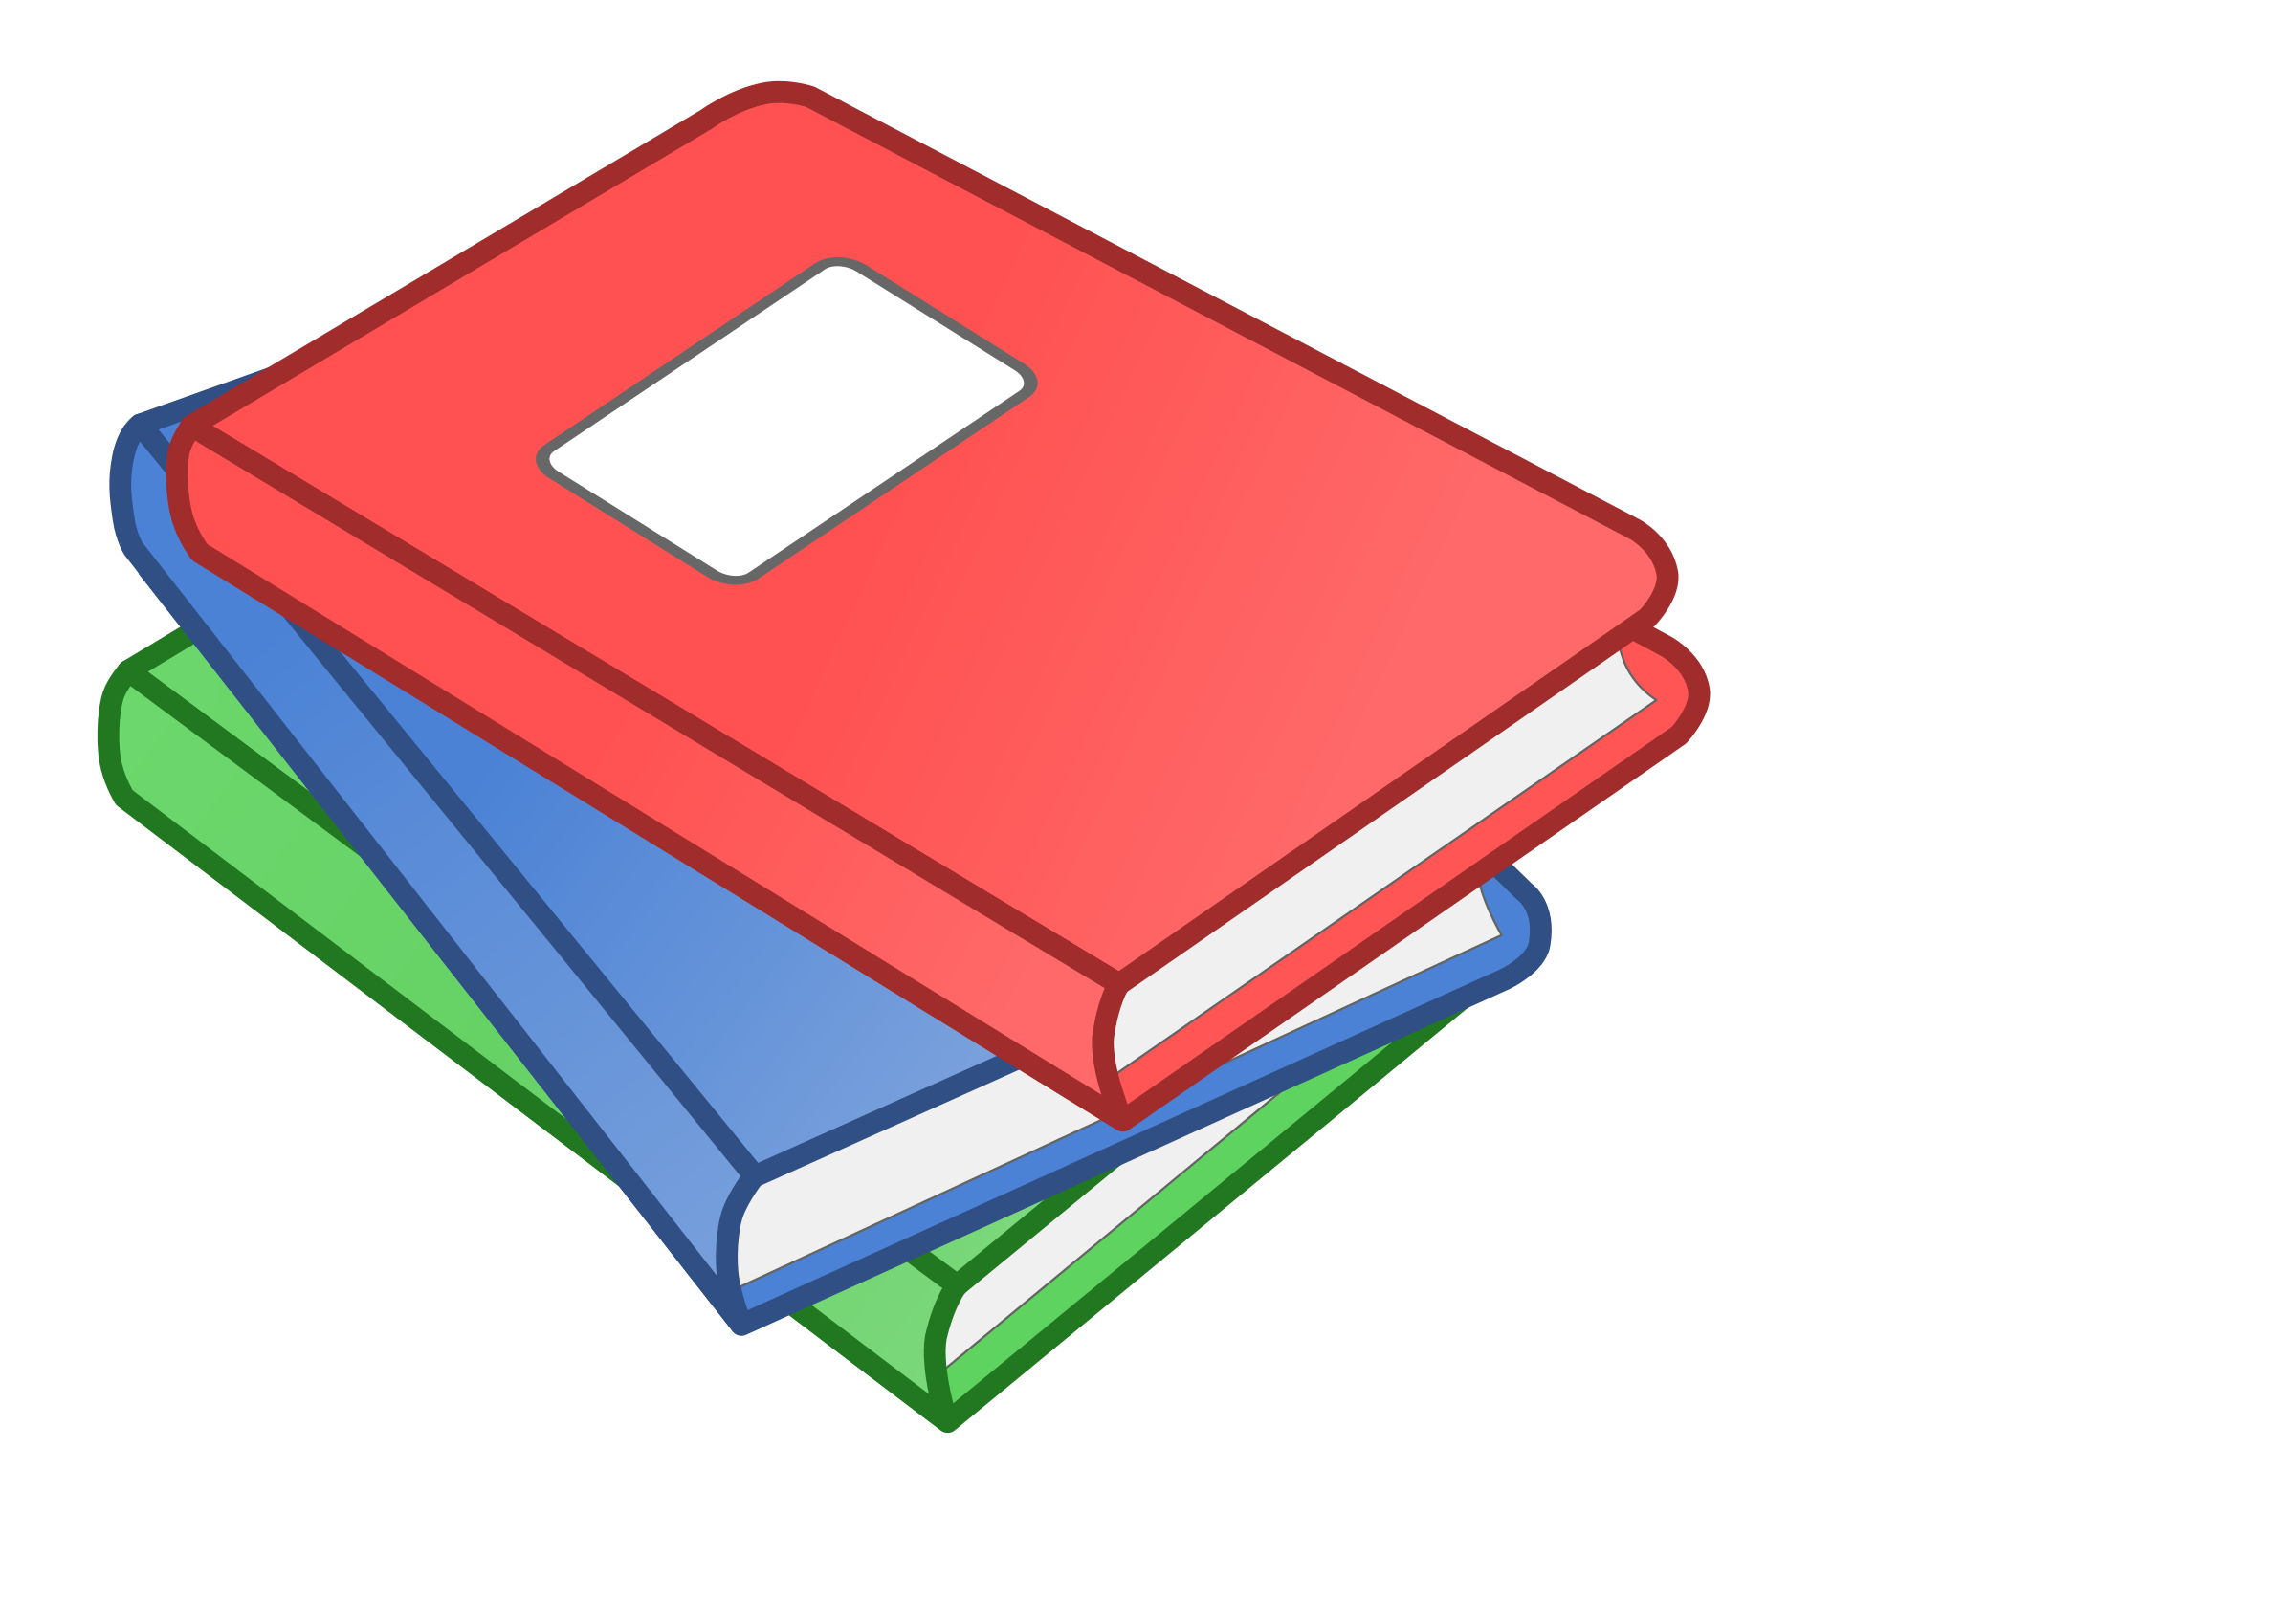 Logbook clipart image freeuse library Clipart. BIG IMAGE (PNG). Similiar Log Book ... - 1697*2400 - Free ... image freeuse library